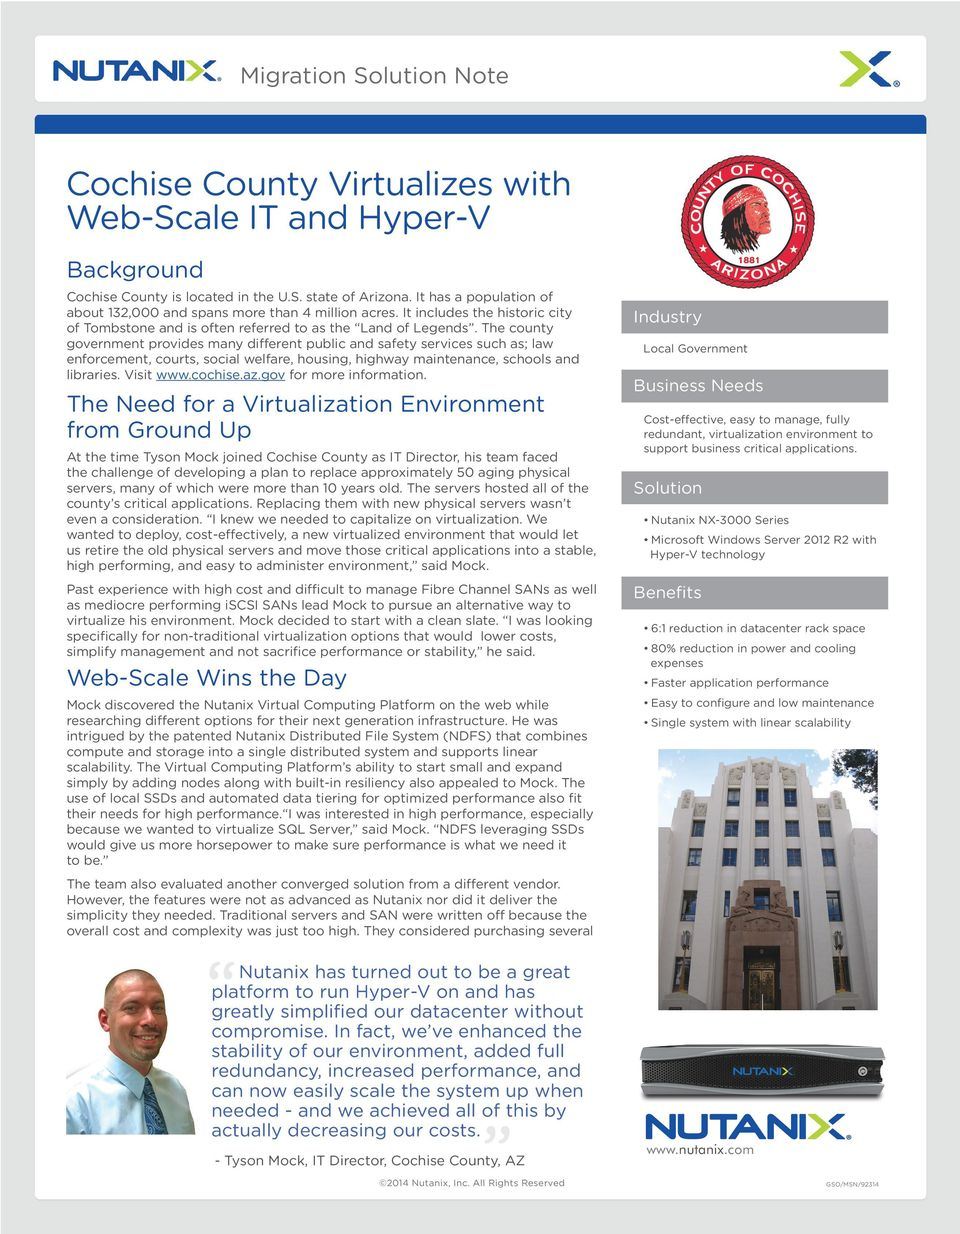 The county government provides many different public and safety services such as; law enforcement, courts, social welfare, housing, highway maintenance, schools and libraries. Visit www.cochise.az.